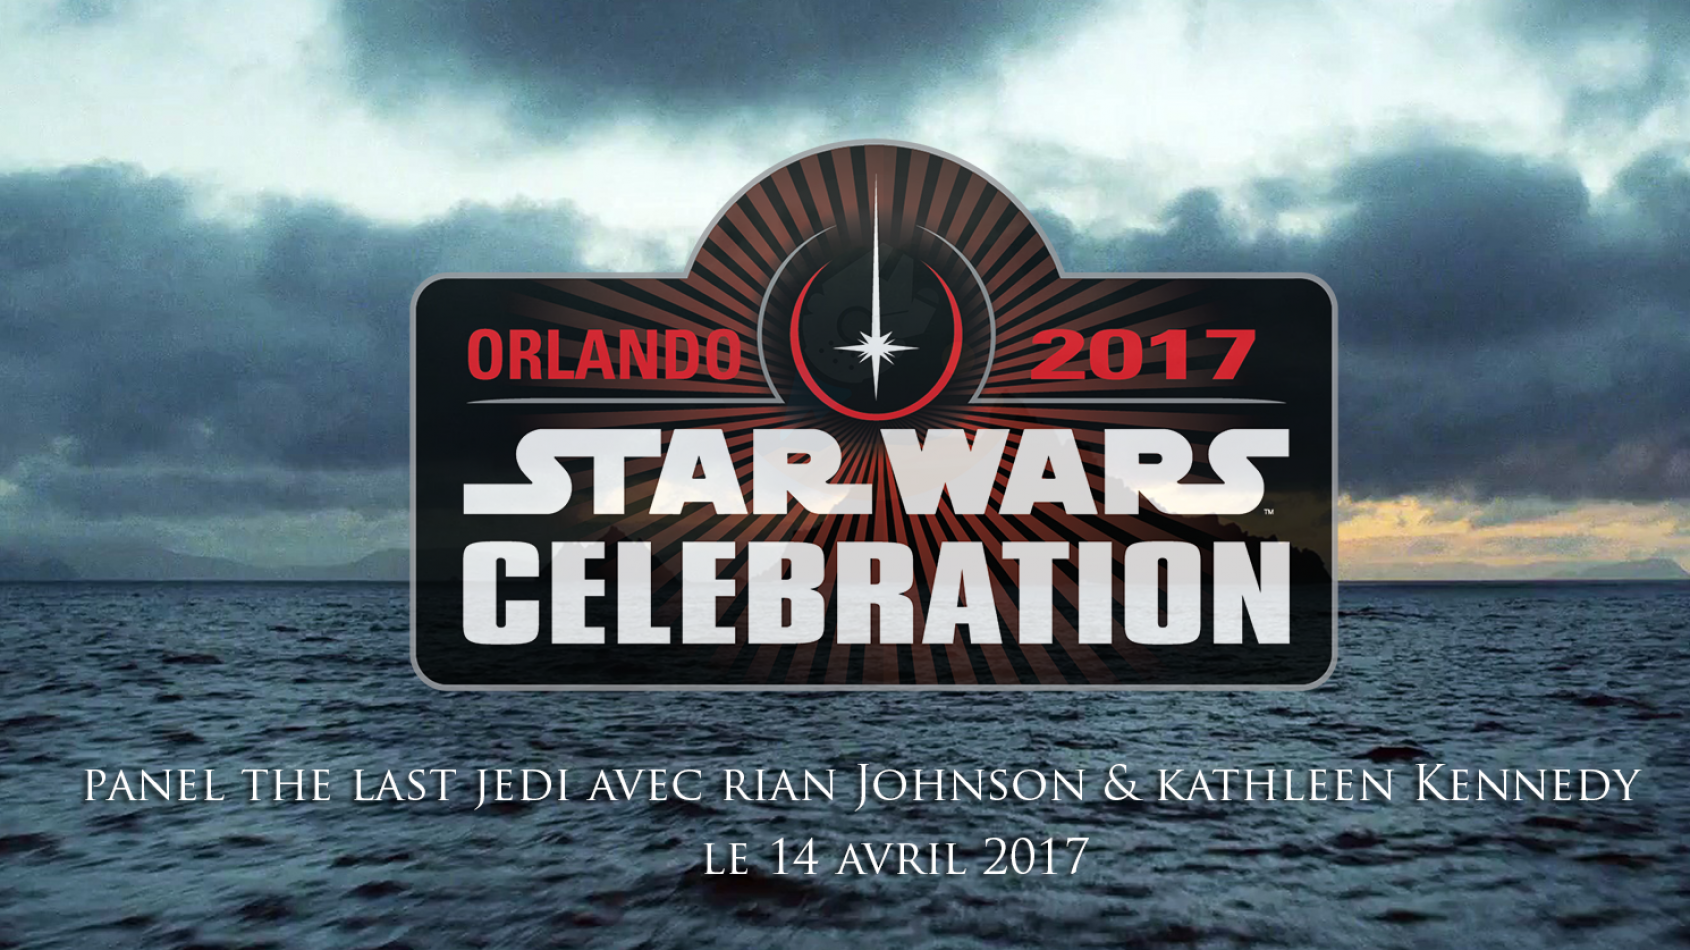 Le panel 'The Last Jedi' aura lieu le 14 avril à la SWCO !